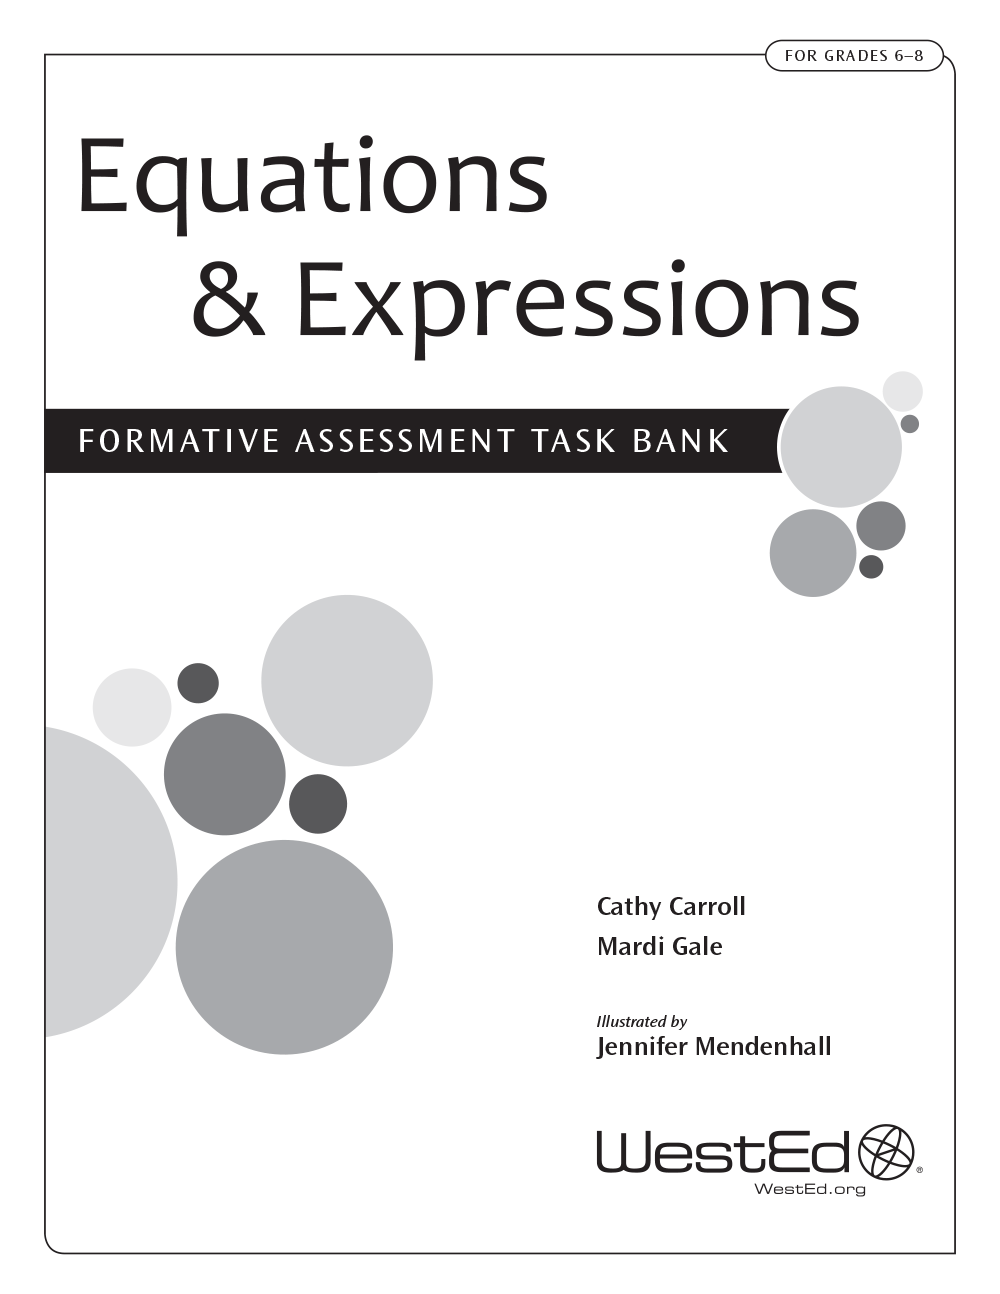 Cover image for Equations & Expressions: Formative Assessment Task Bank for Grades 6-8